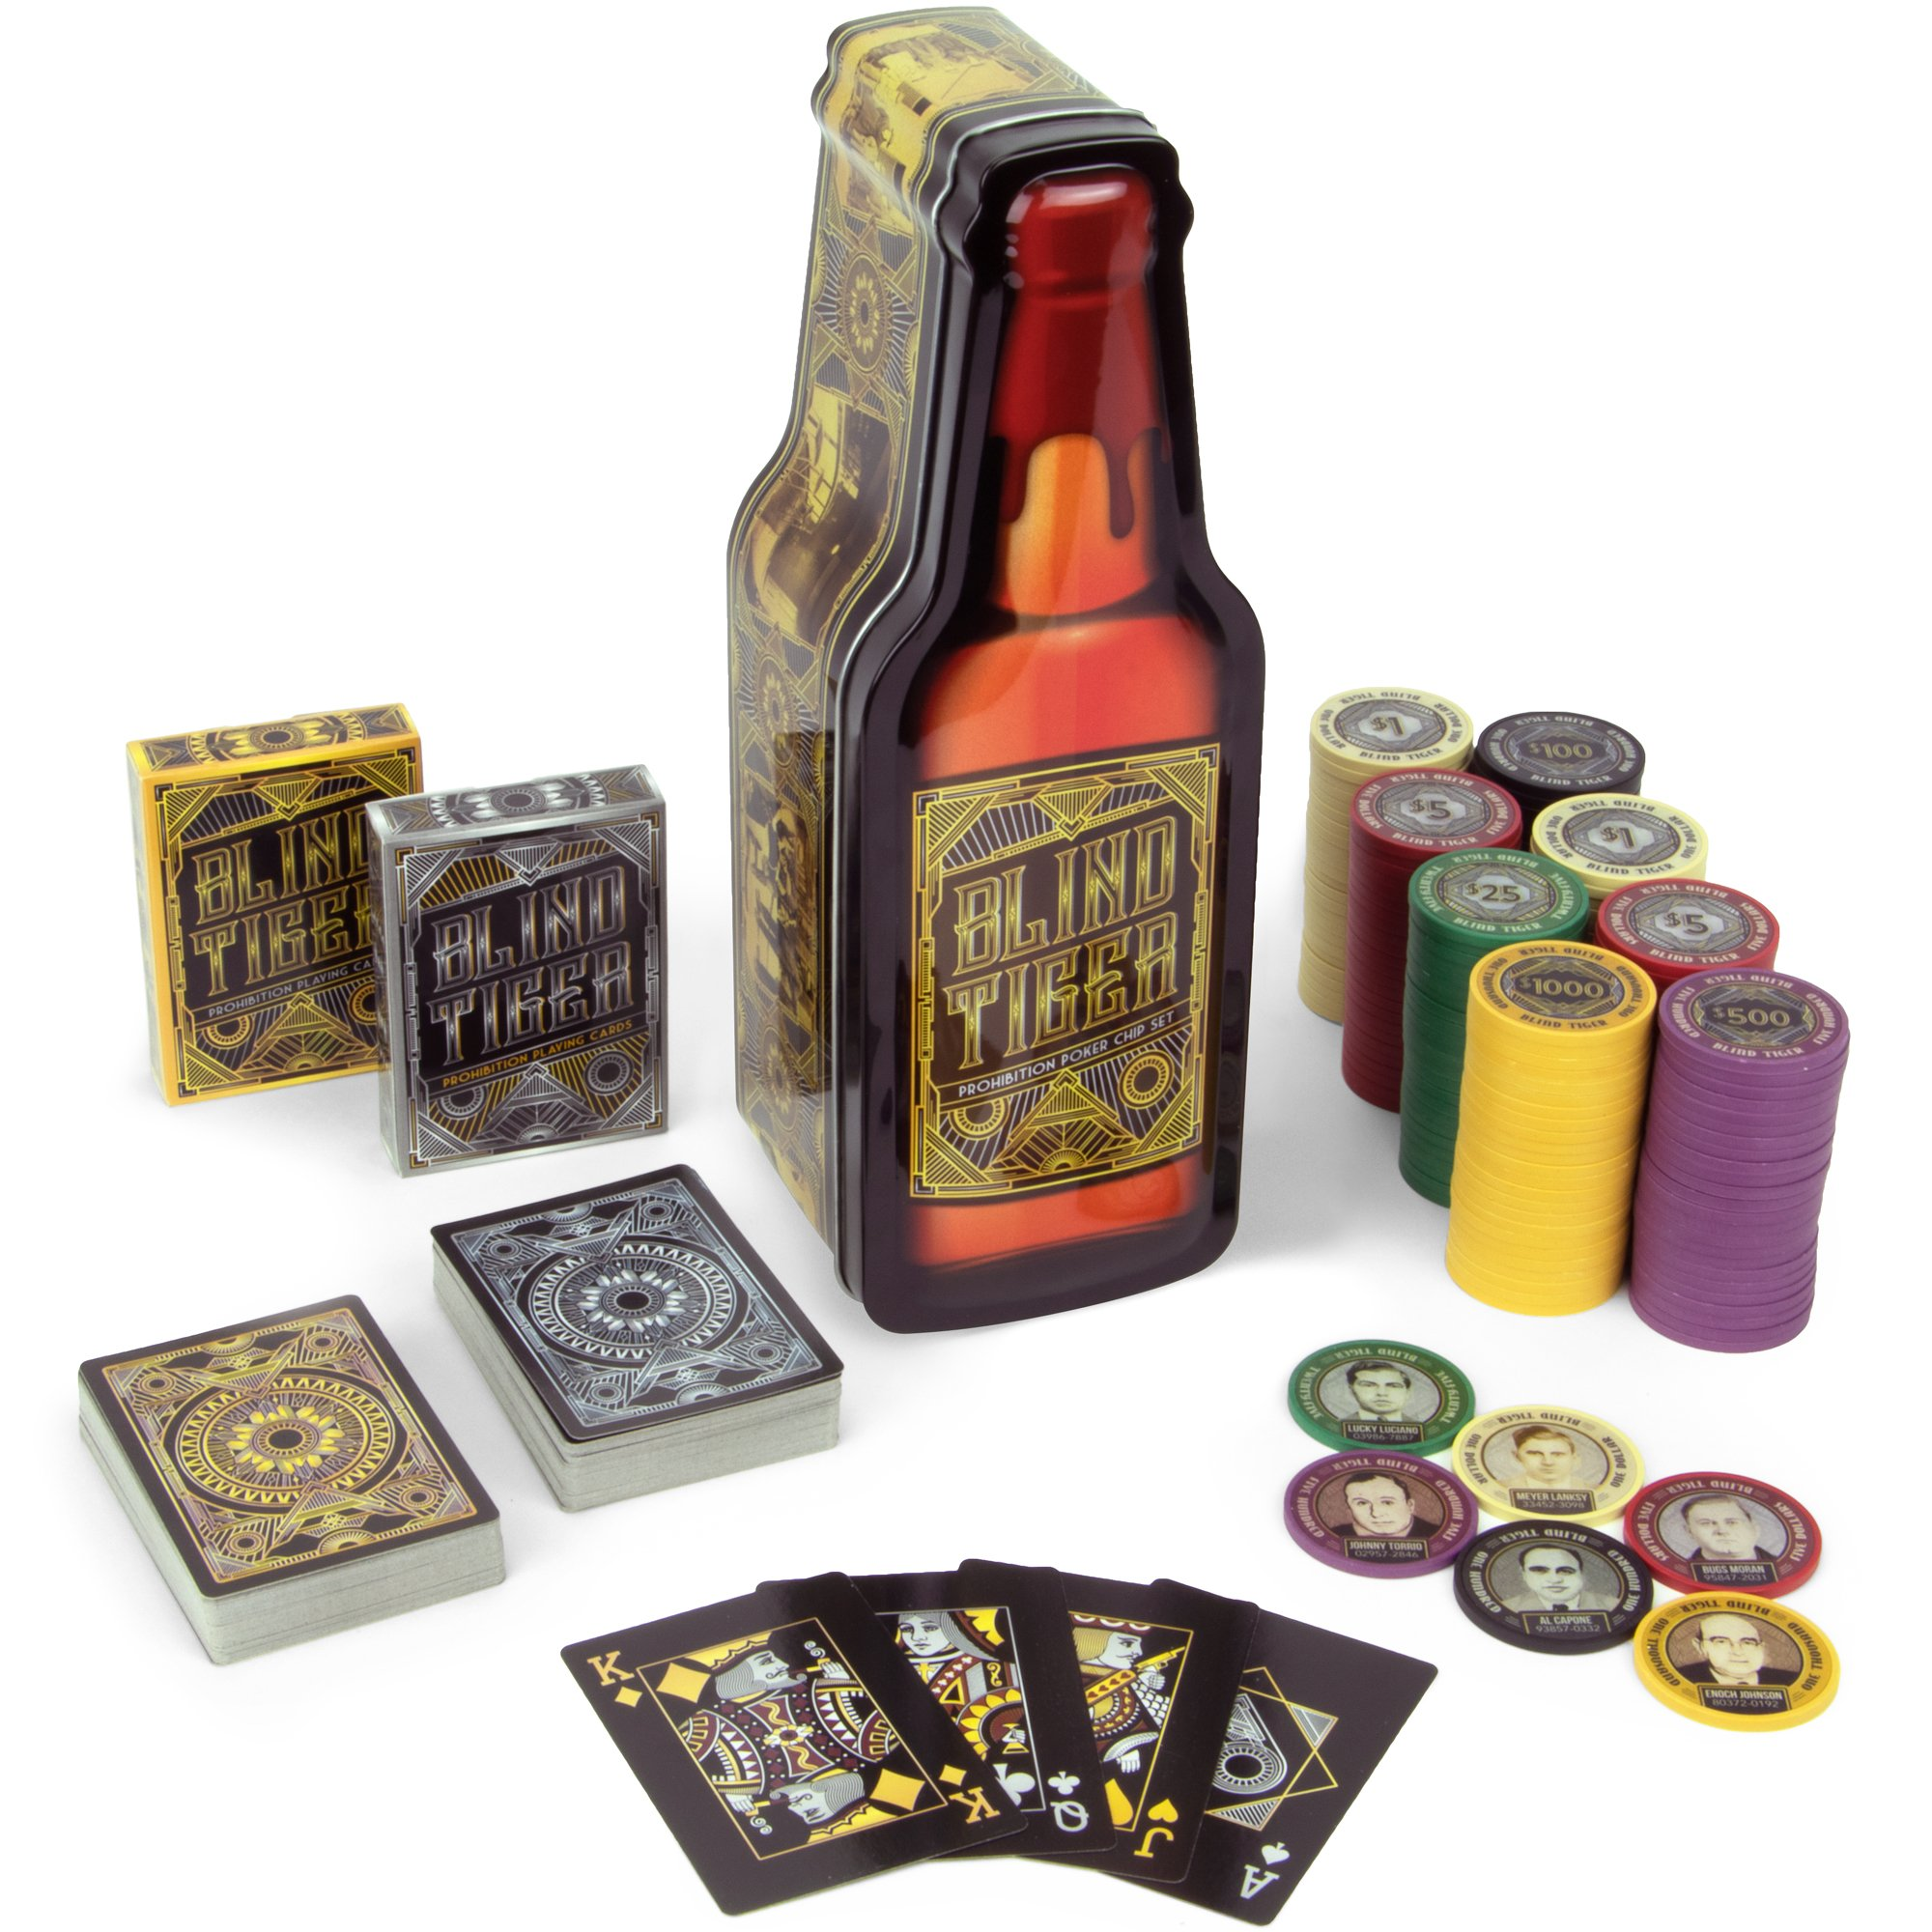 Brybelly Blind Tiger Prohibition Poker Chip Set - 2 Decks Gangster and Roaring Twenties Themed Playing Cards and 200 Poker Chips in Whiskey Bottle Gift Tin by Brybelly